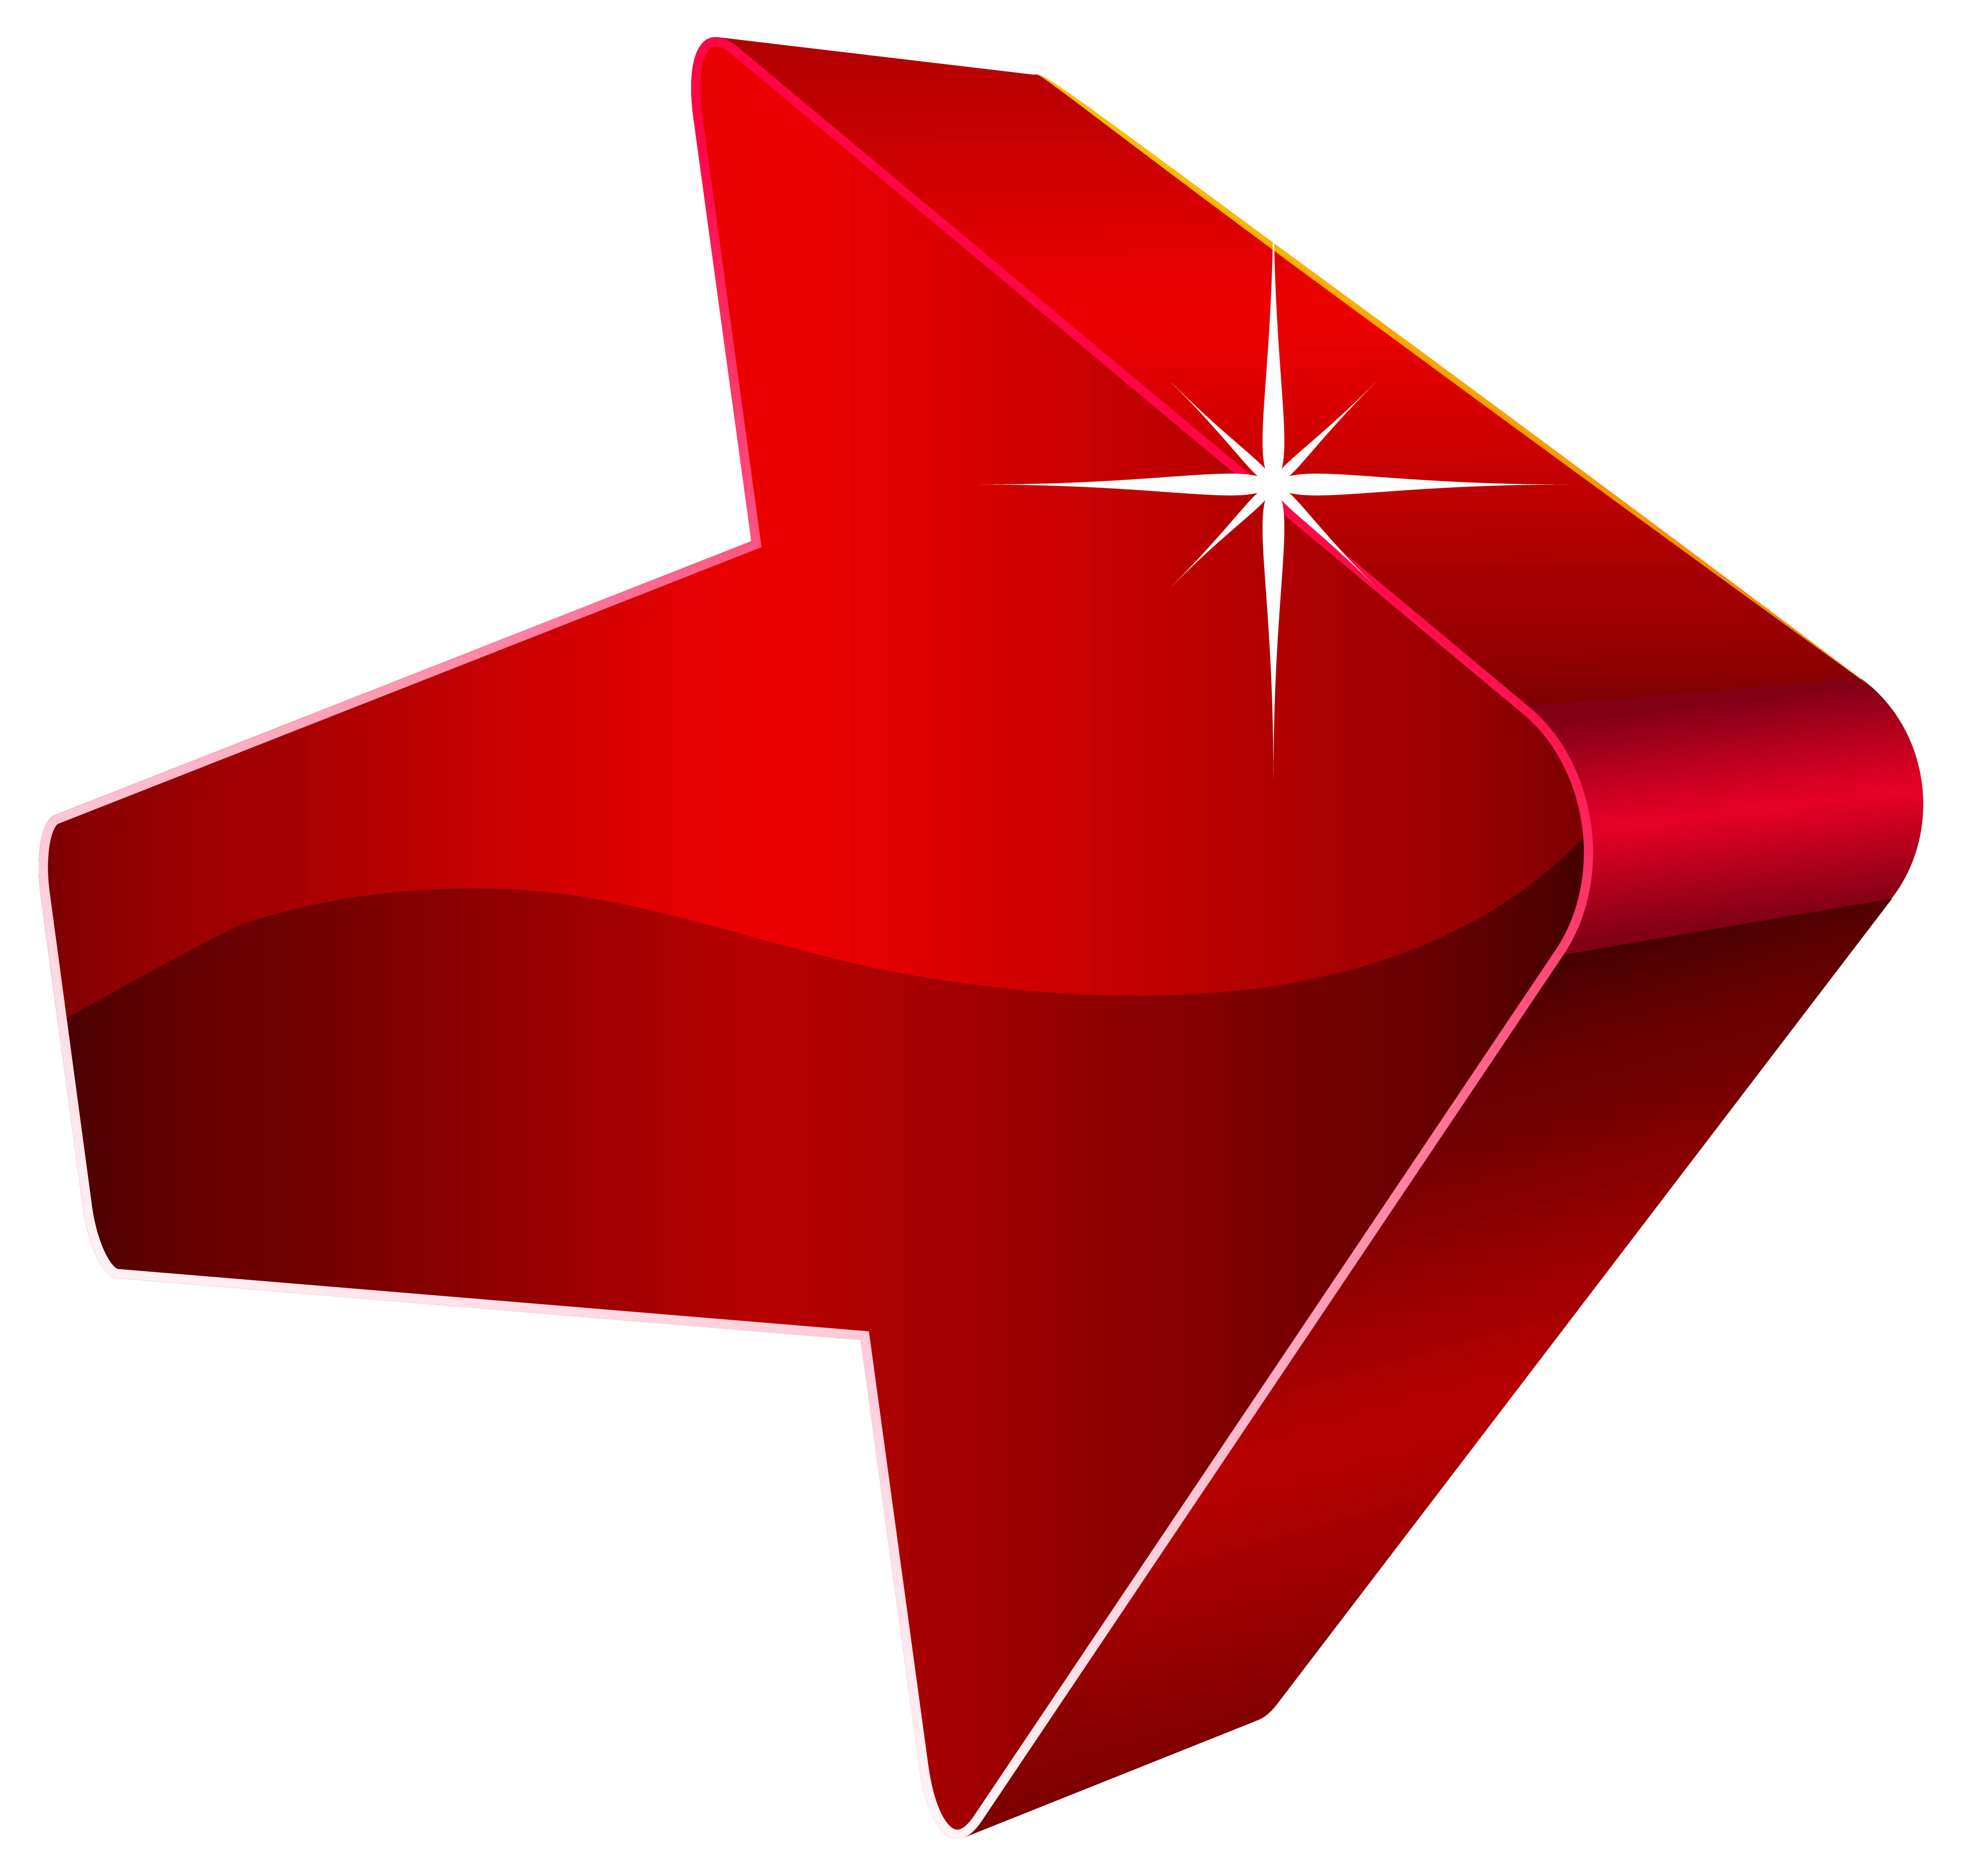 Red Arrow Png - ClipArt Best